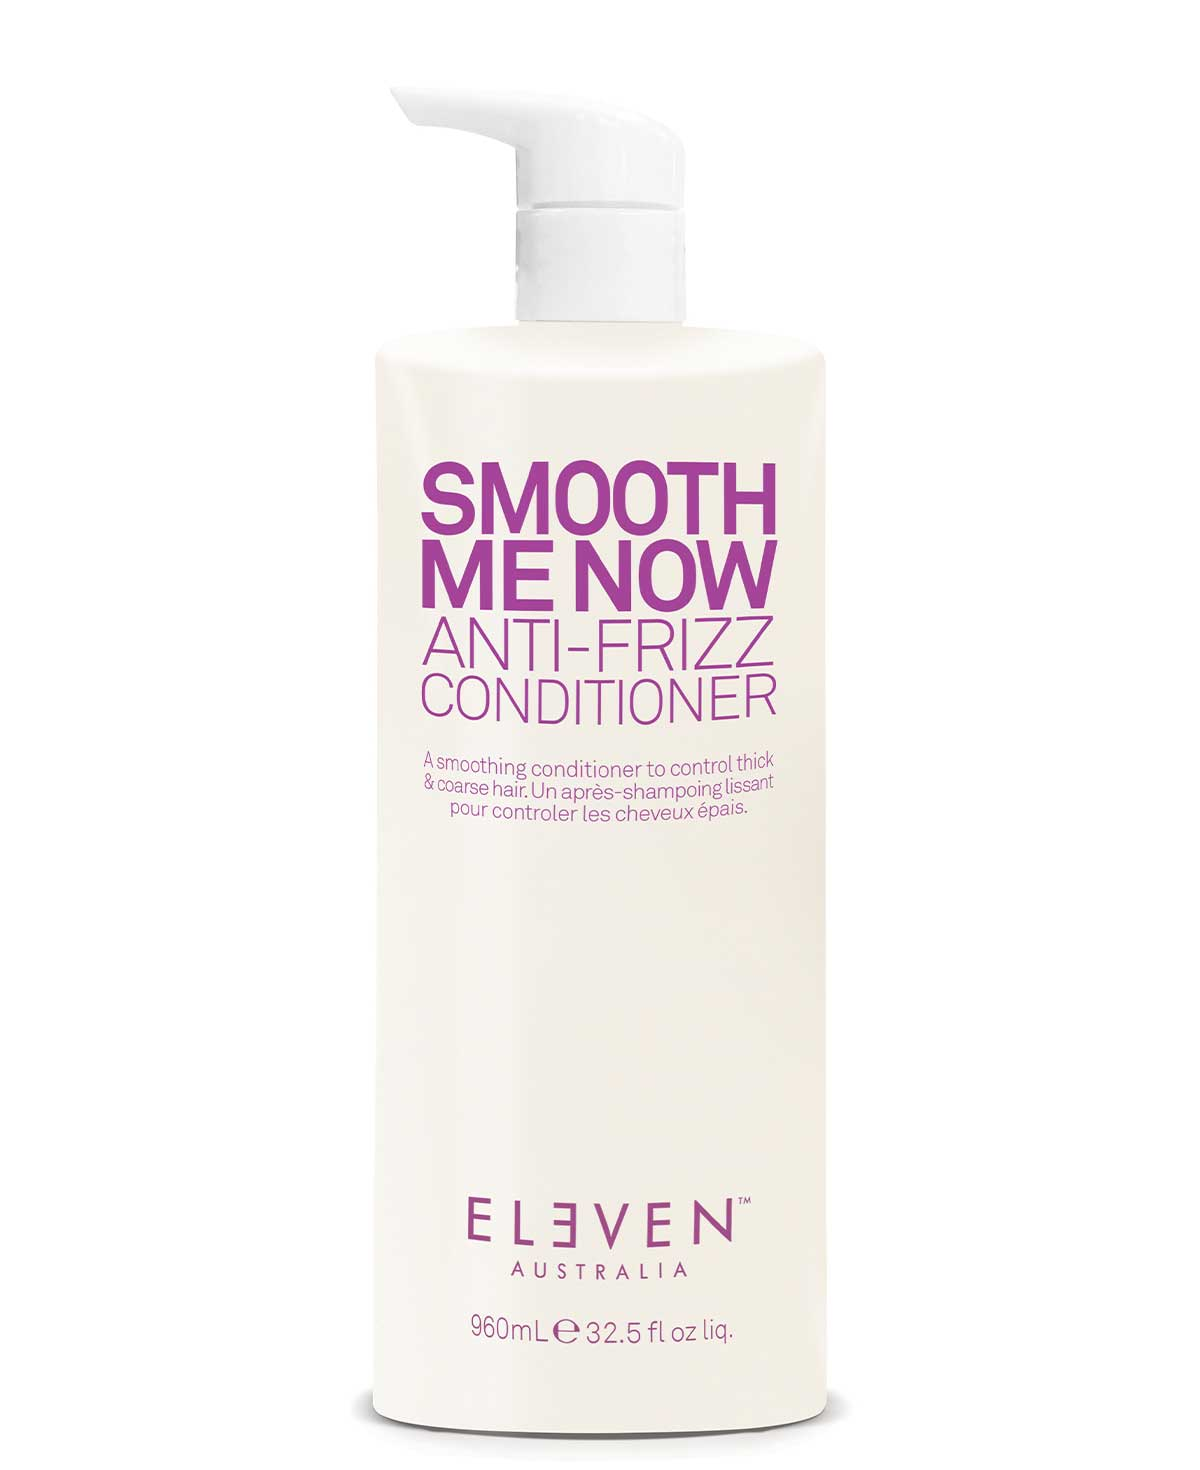 Eleven Smooth Me Now Anti-Frizz Conditioner 960ml